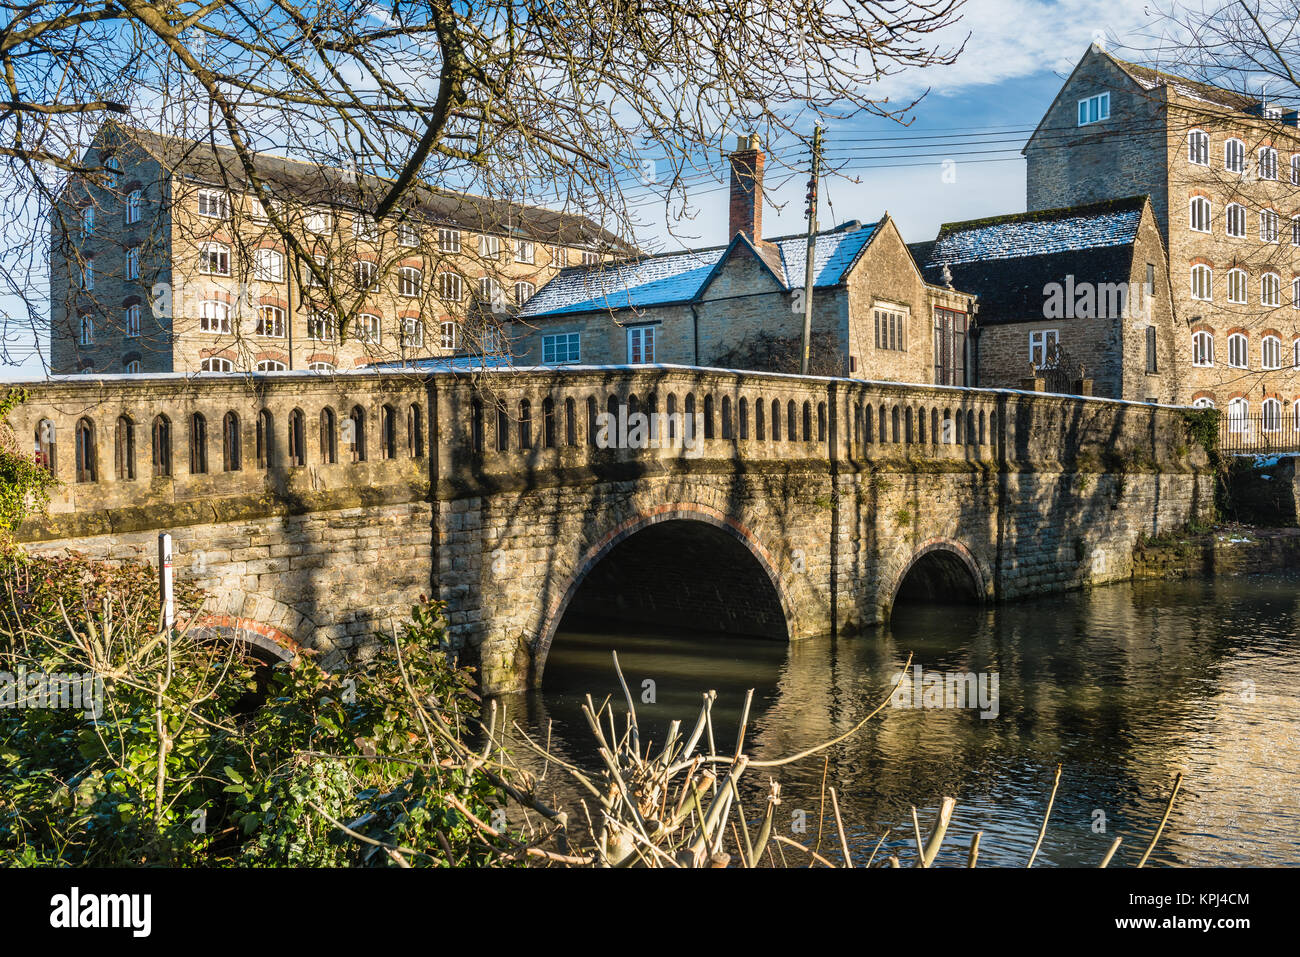 A short walk from the town centre, St Johns Bridge crosses the River Avon to the historic Silk Mills on the edge - Stock Image